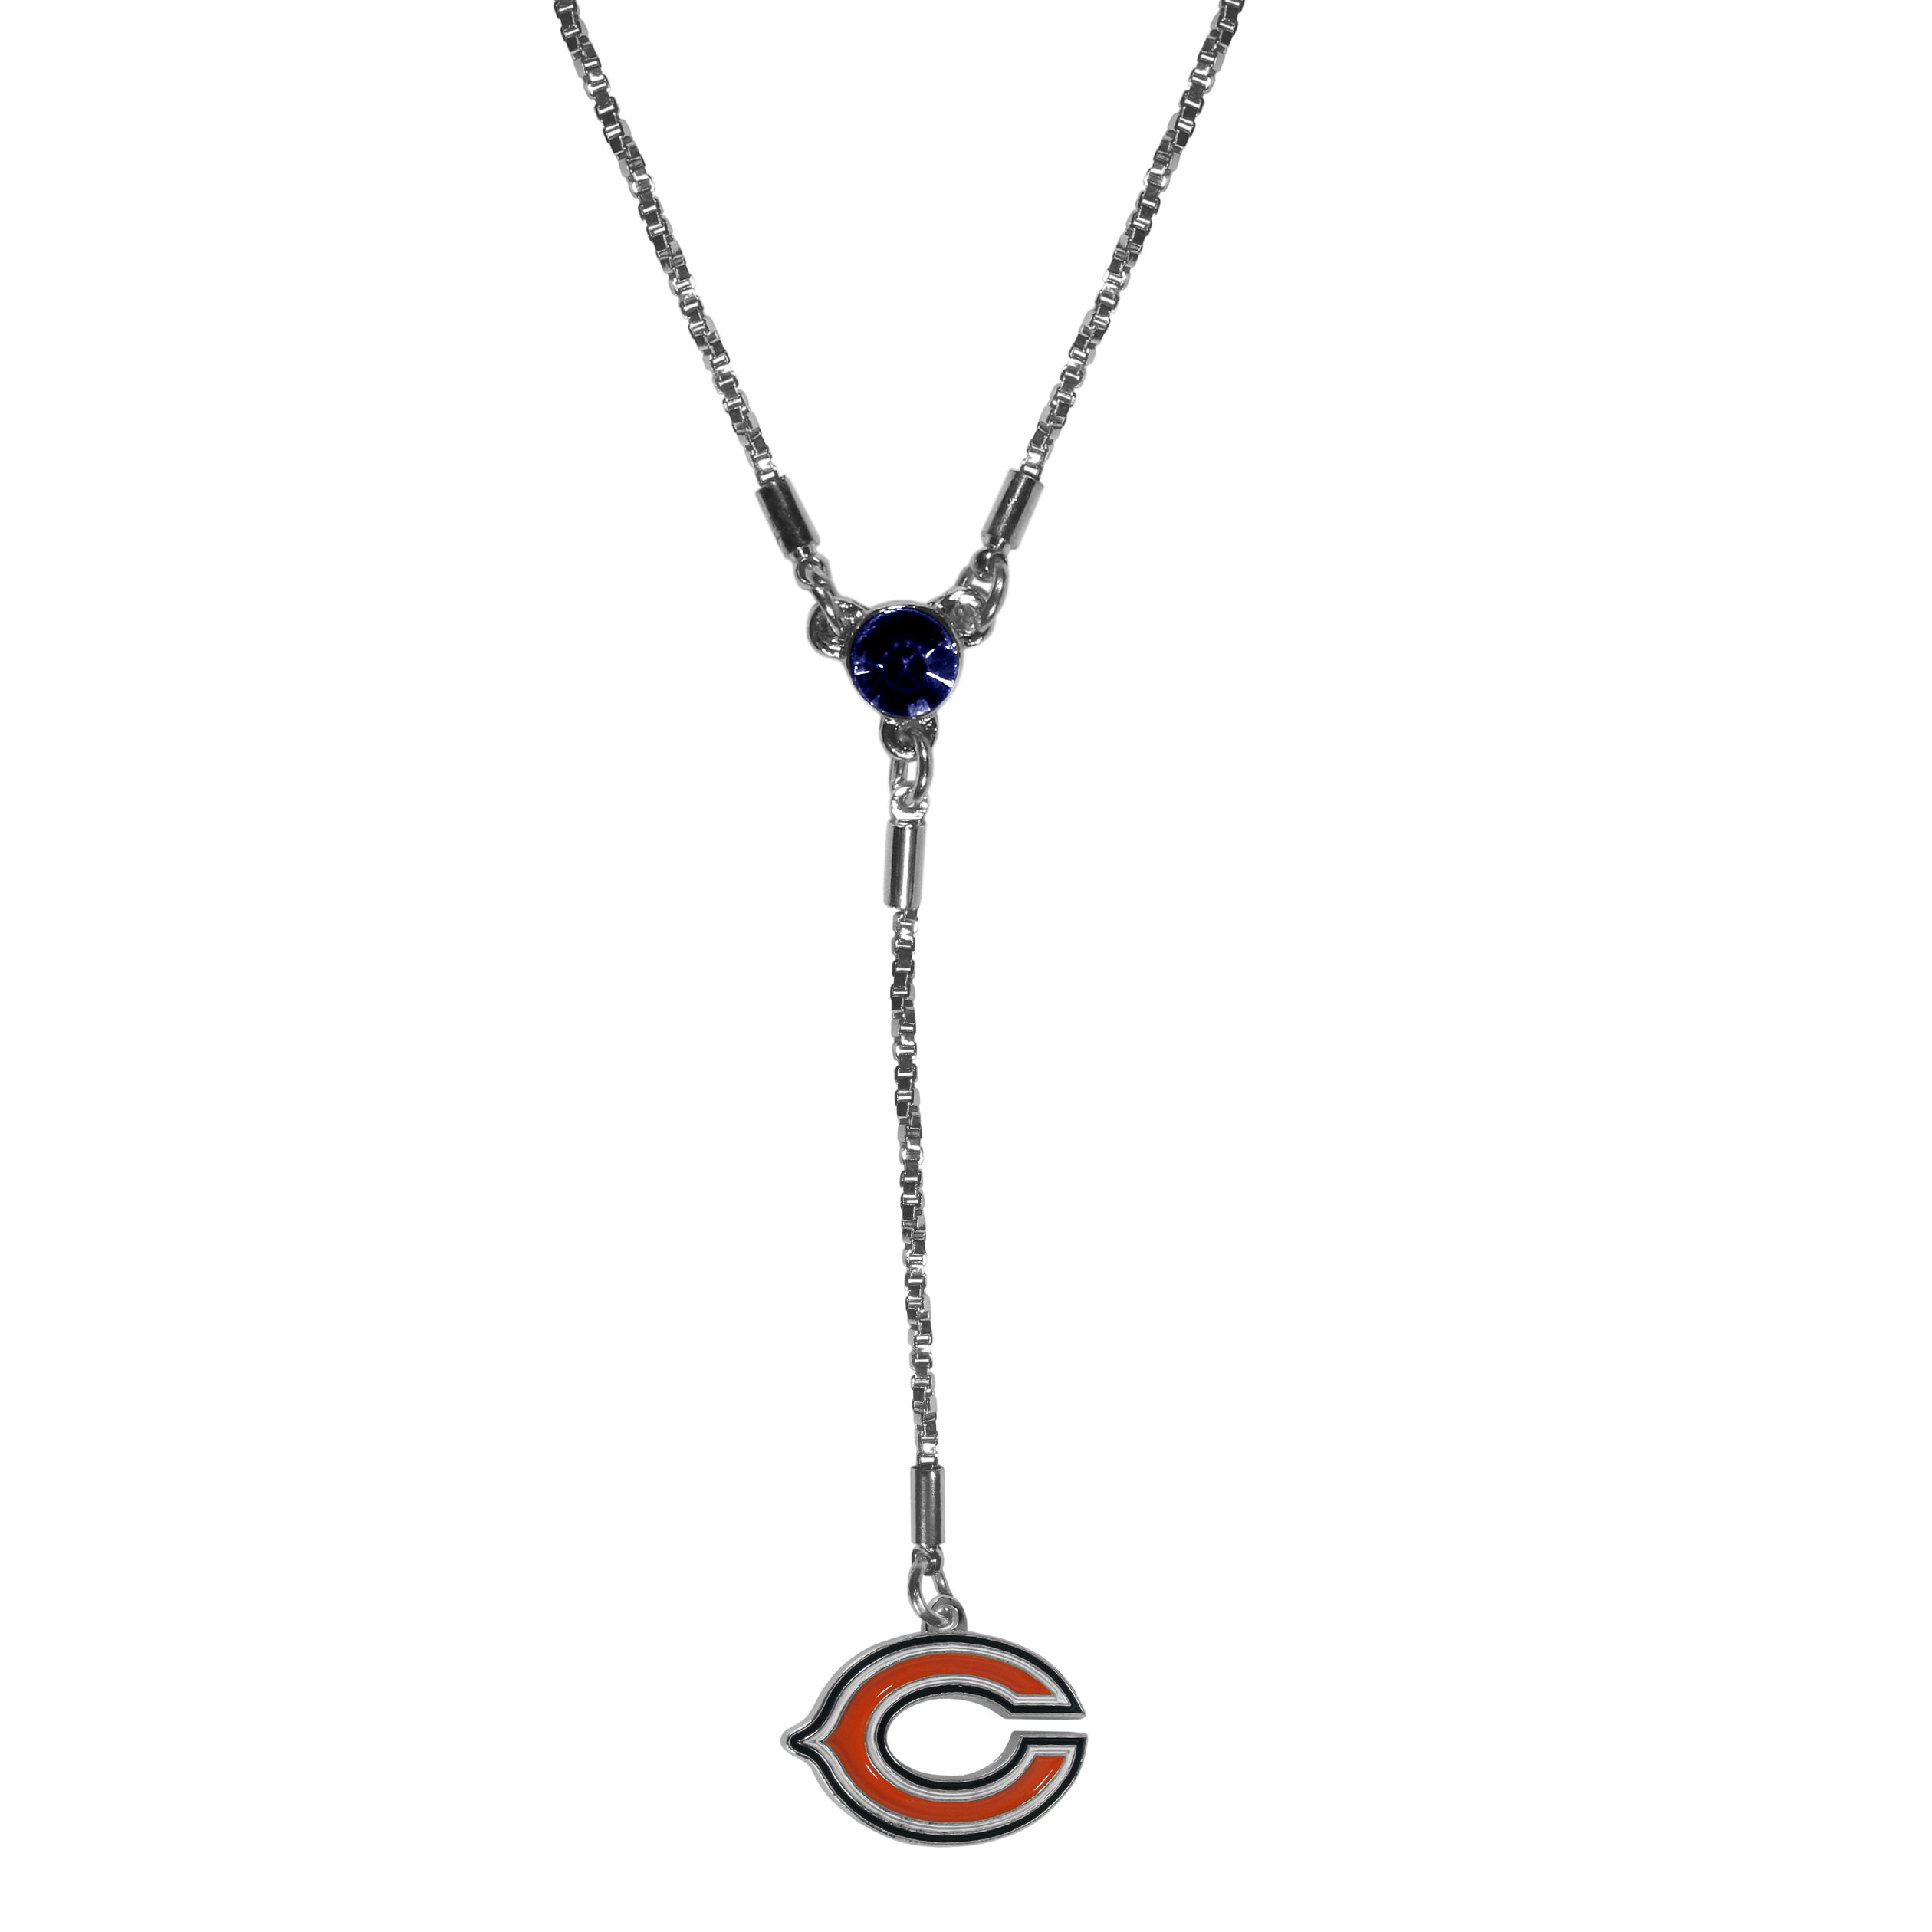 Chicago Bears Lariat Necklace - This designer look is a stylish version of the classic lariat necklace. The chic box chain is 16 inches long with a 2 inch extender, the Y drop features a large team colored crystal with an expertly carved team charm. This trendy look is a perfect blend of sporty and chic making is a mush-have fashion accessory for the fashion-forward Chicago Bears fan.